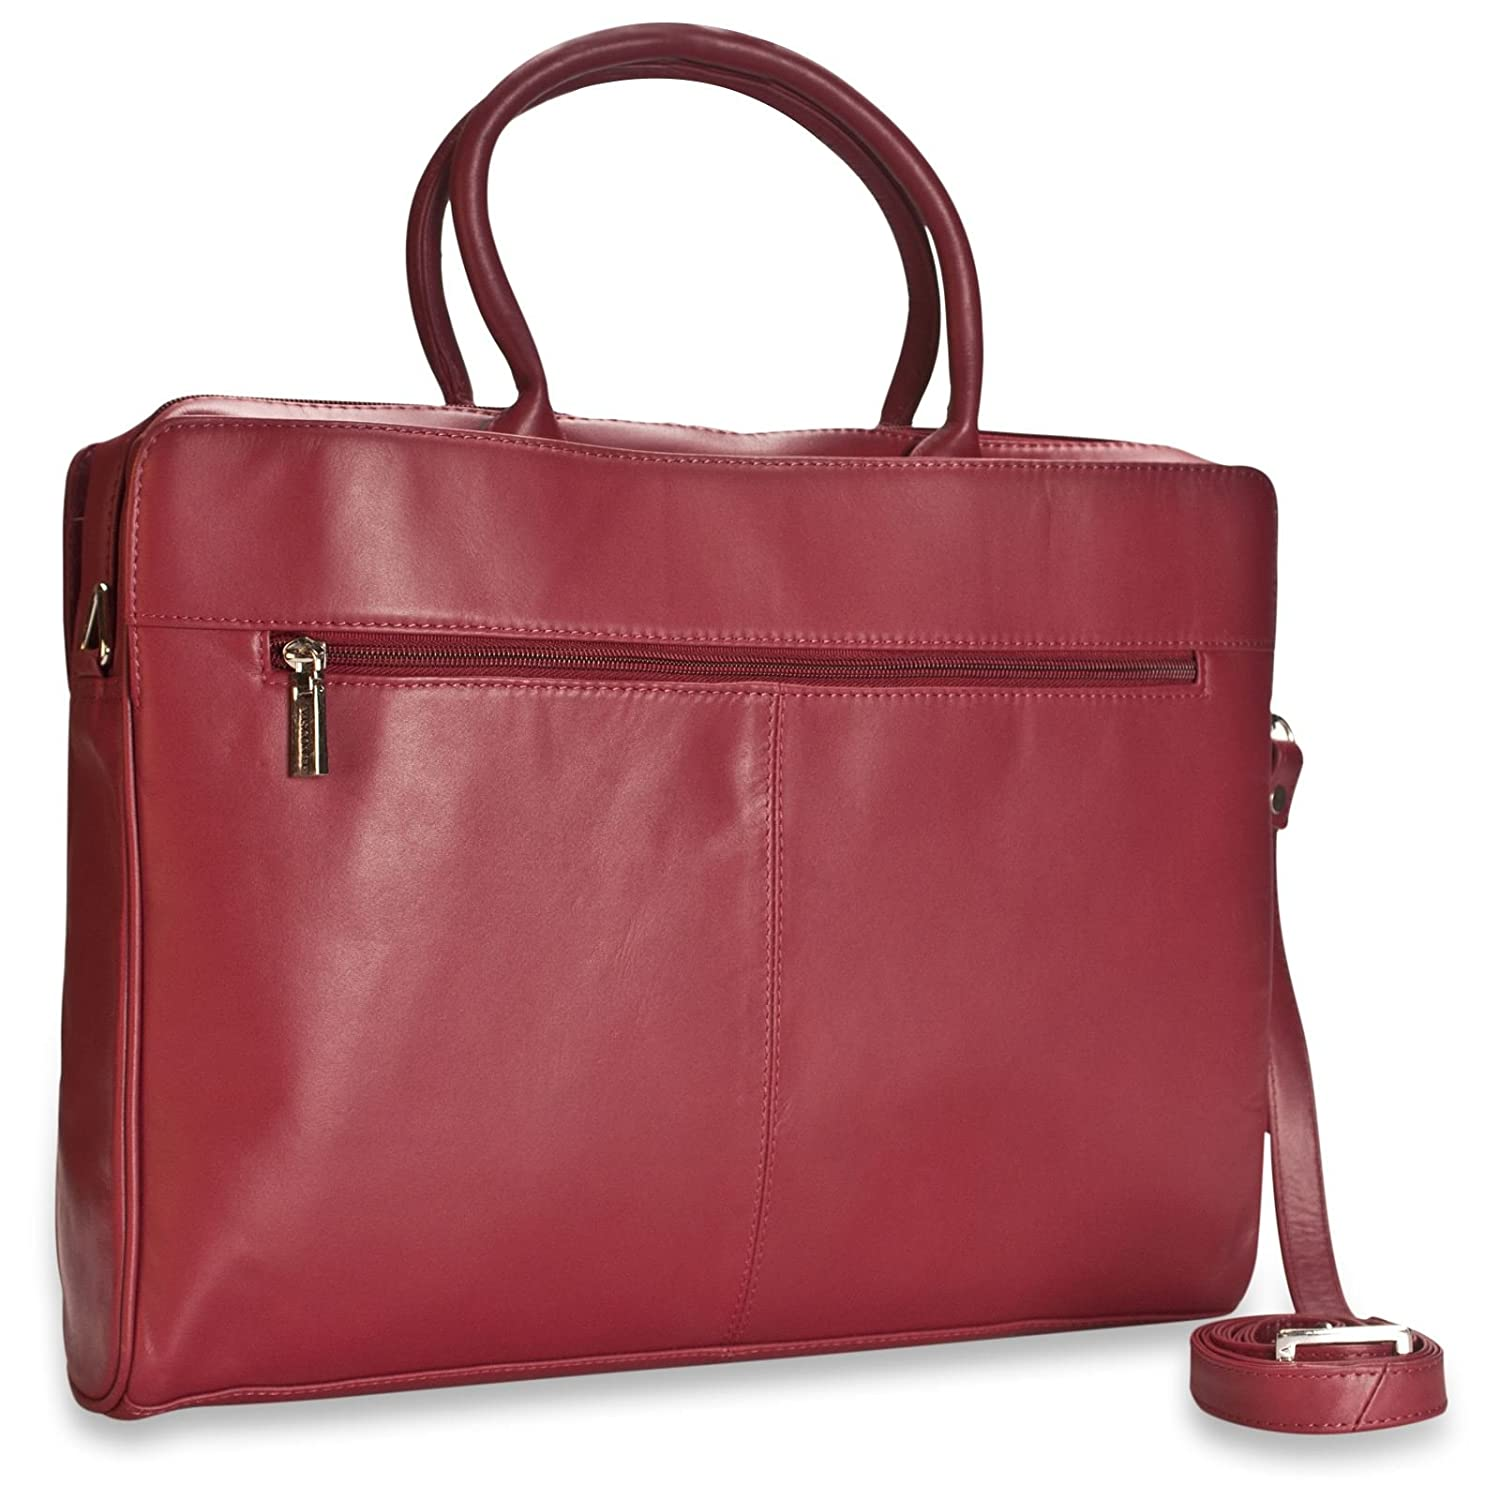 New Ladies Visconti Dark Red Leather Briefcase Laptop Bag RFID Blocking Style 18427